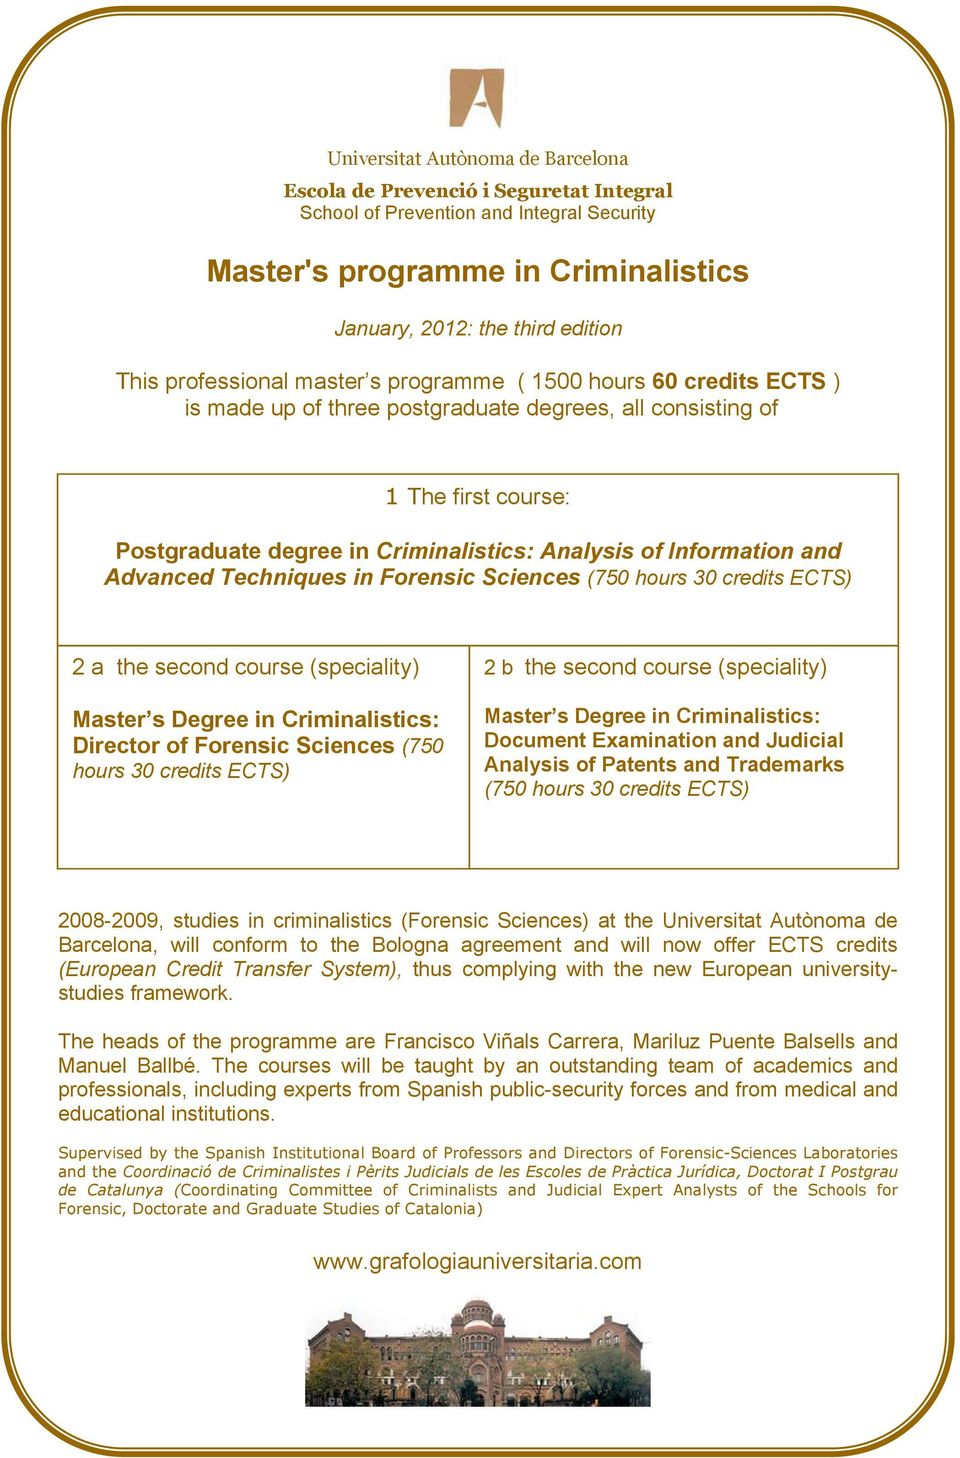 Information and Advanced Techniques in Forensic Sciences (750 hours 30 credits ECTS) 2 a the second course (speciality) Master s Degree in Criminalistics: Director of Forensic Sciences (750 hours 30